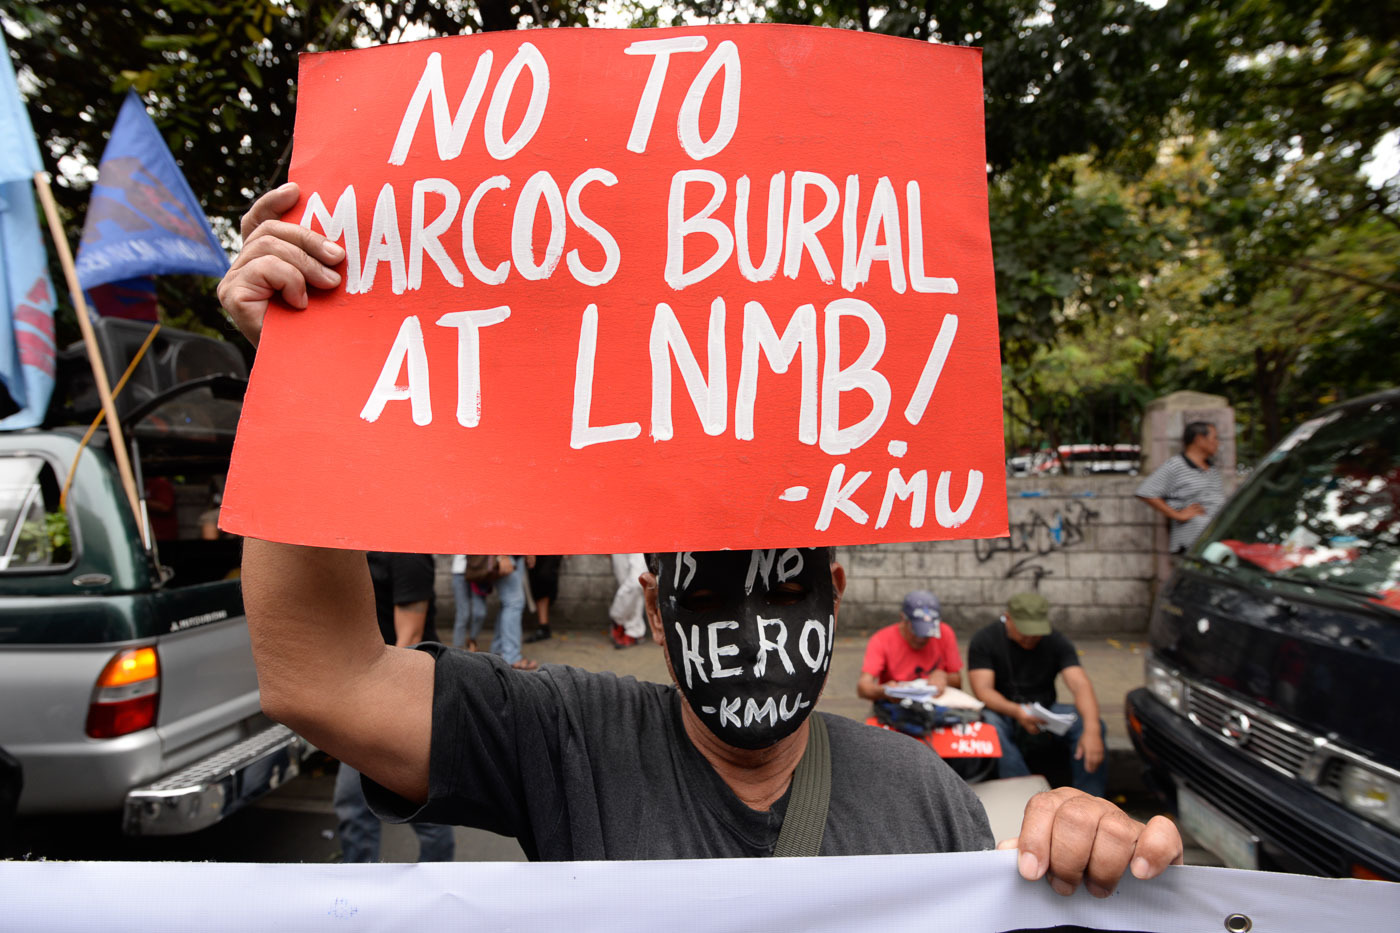 CHR: Rights violations during Martial law not erased by Marcos burial at LNMB 1